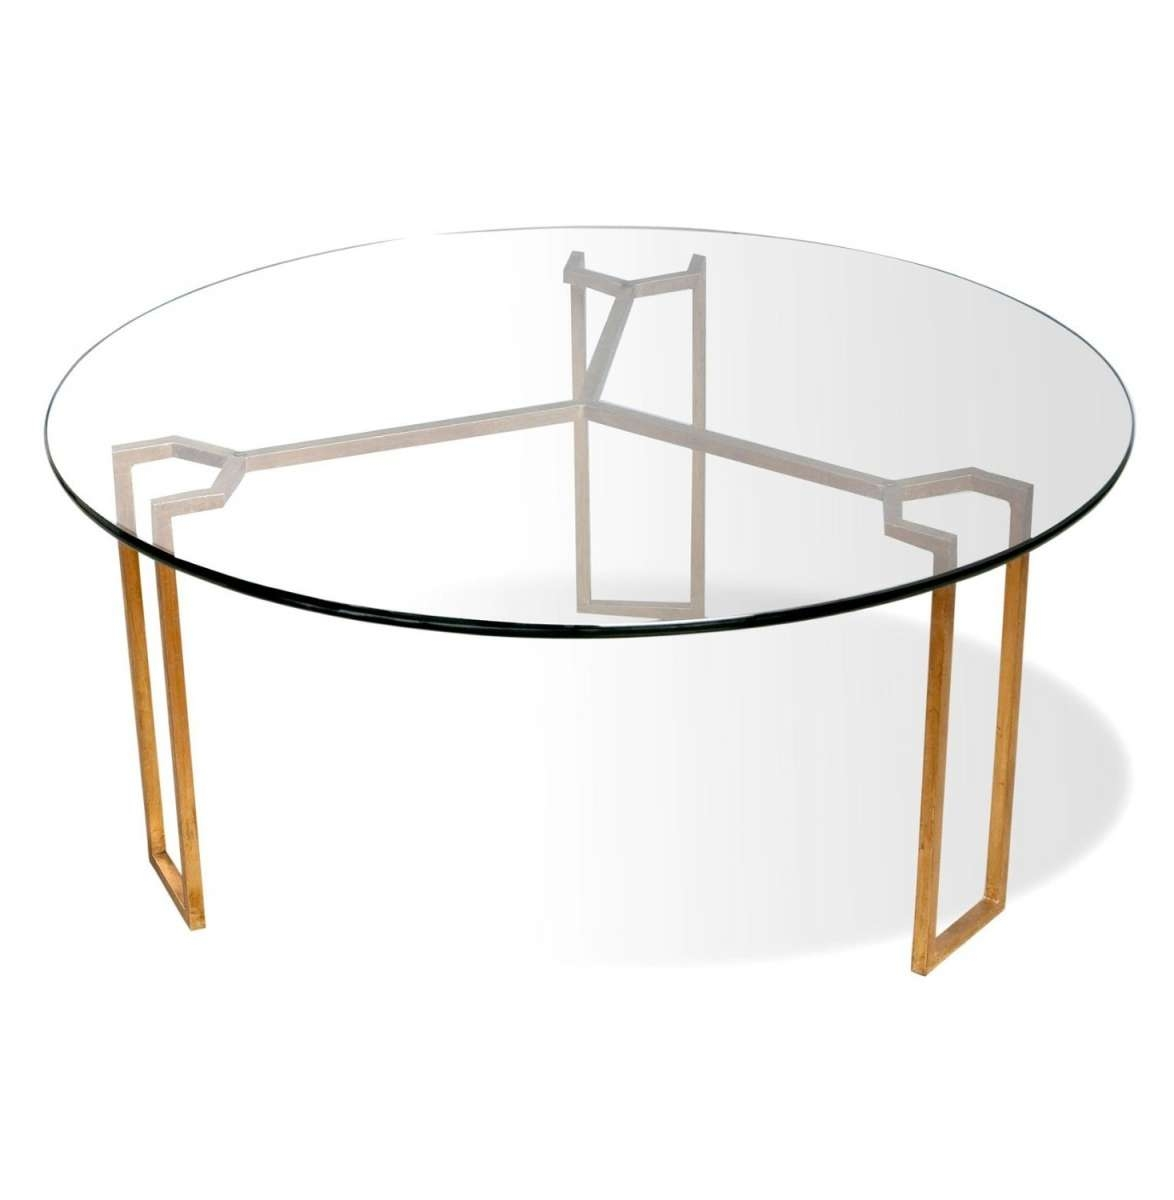 Furniture: Glass Contemporary Round Coffee Tables With Gold Metal Within Current Contemporary Round Coffee Tables (View 17 of 20)